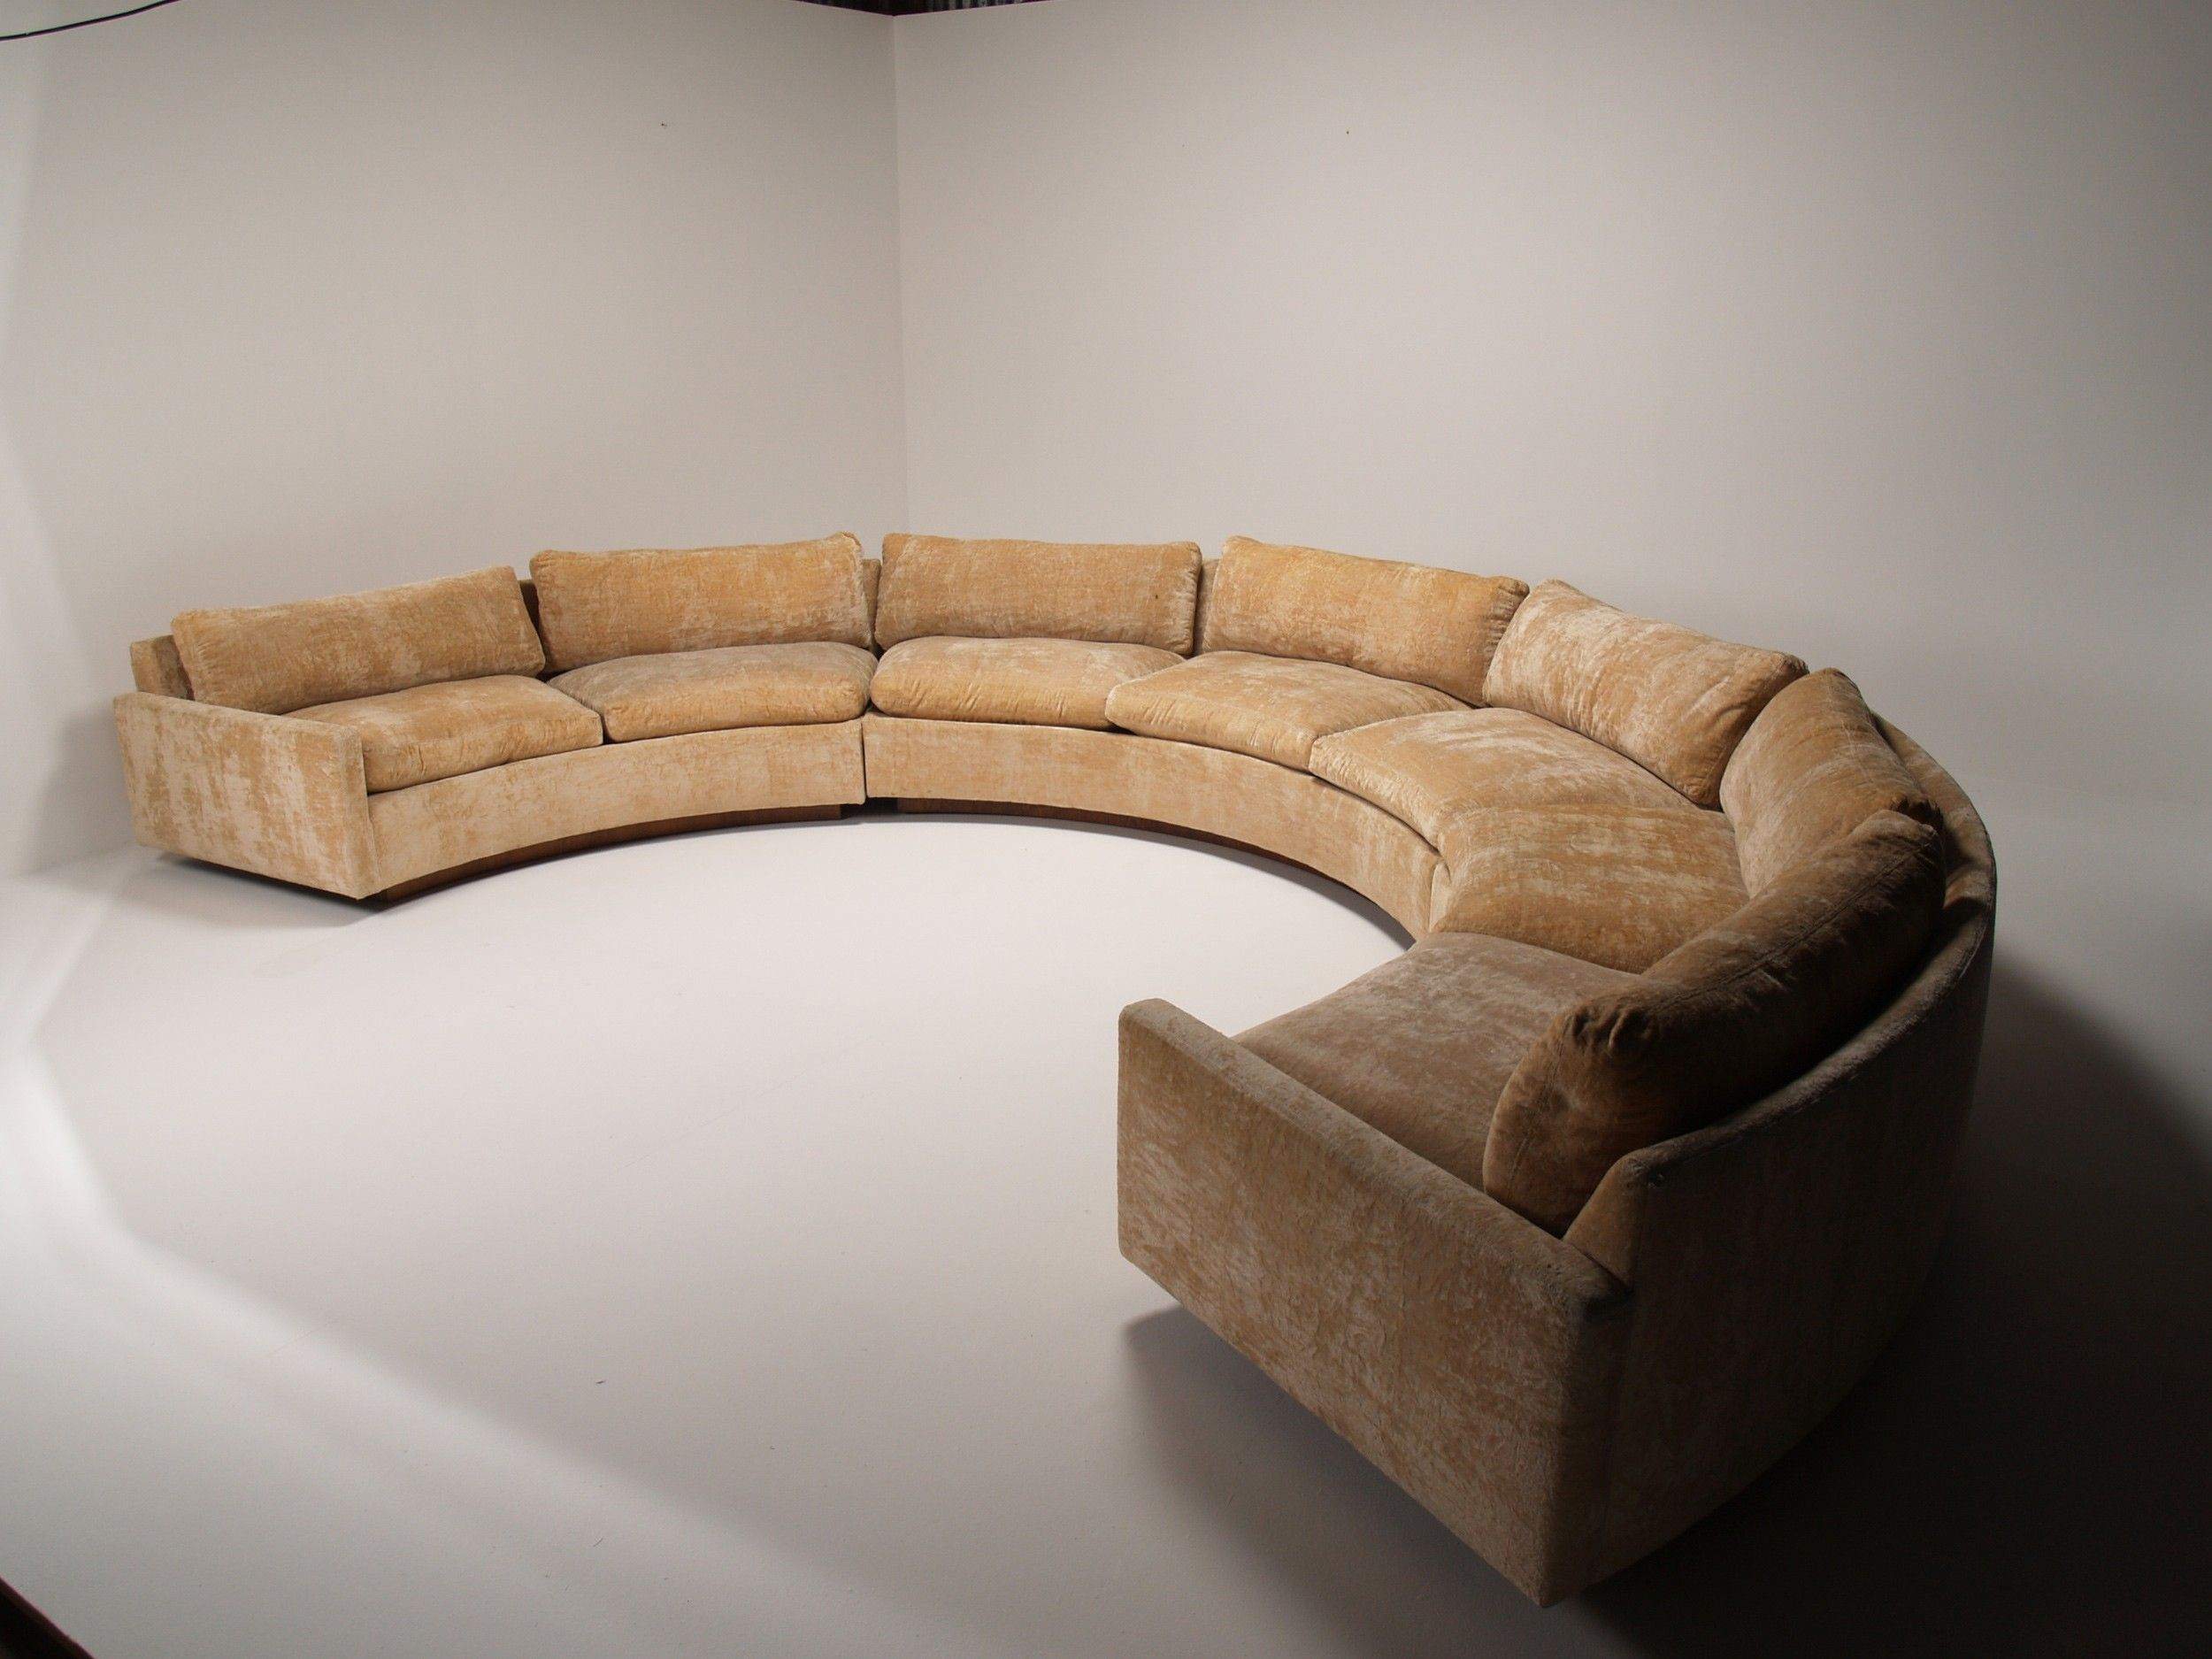 Popular Grey Velvet Curved Couch Without Cushions As Well As In White Wall  Painted Color Interior And White Flooring As Inspiring Waiting Room  Furnishing ...